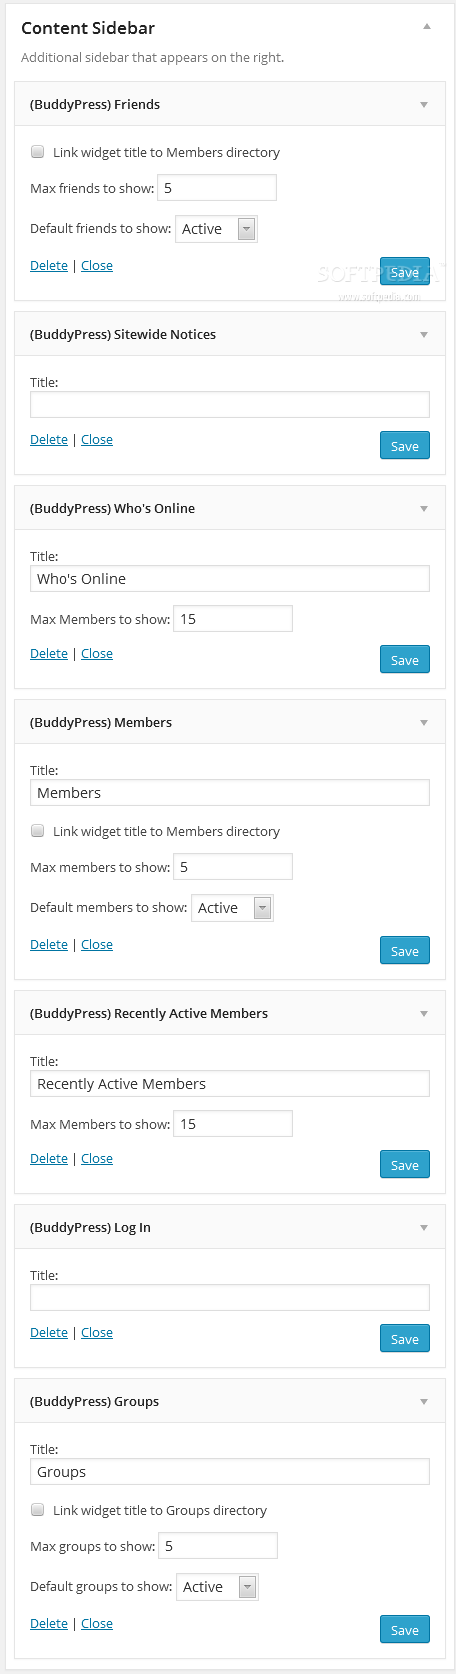 BuddyPress - Specific BuddyPress sidebar widgets are available inside the WP backend